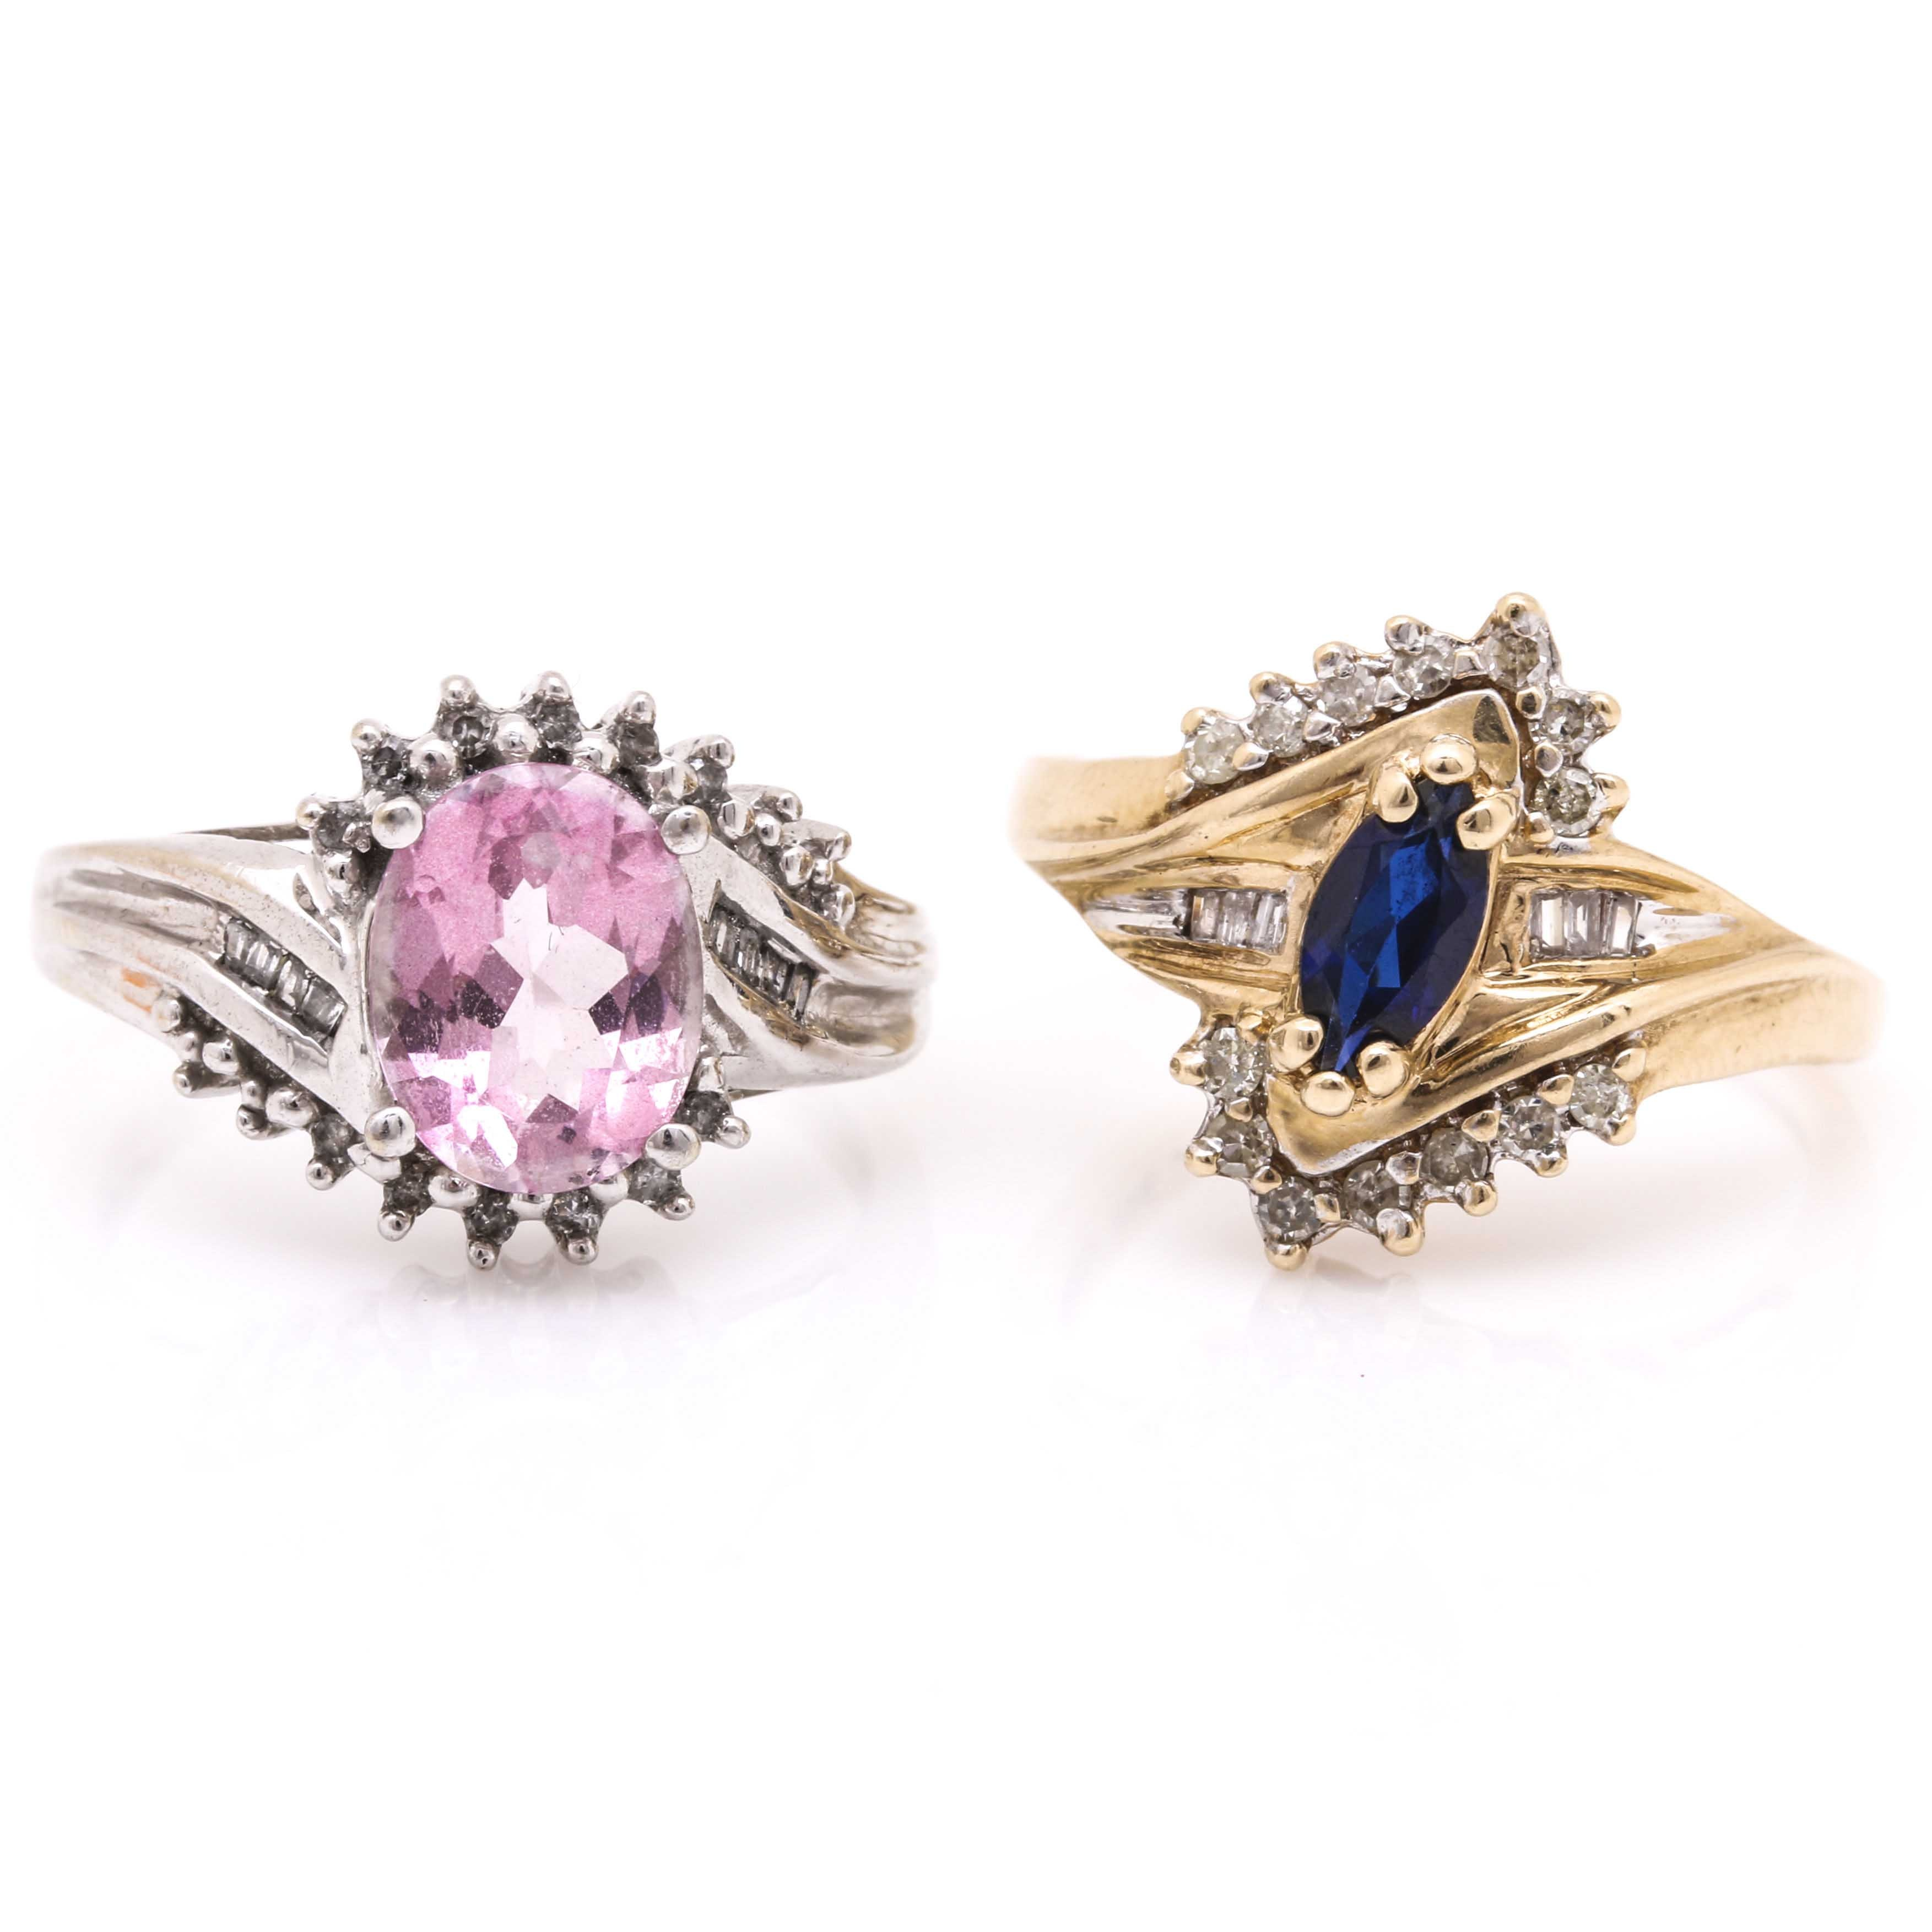 Two 10K Yellow and White Gold Rings Featuring Diamonds and Sapphires